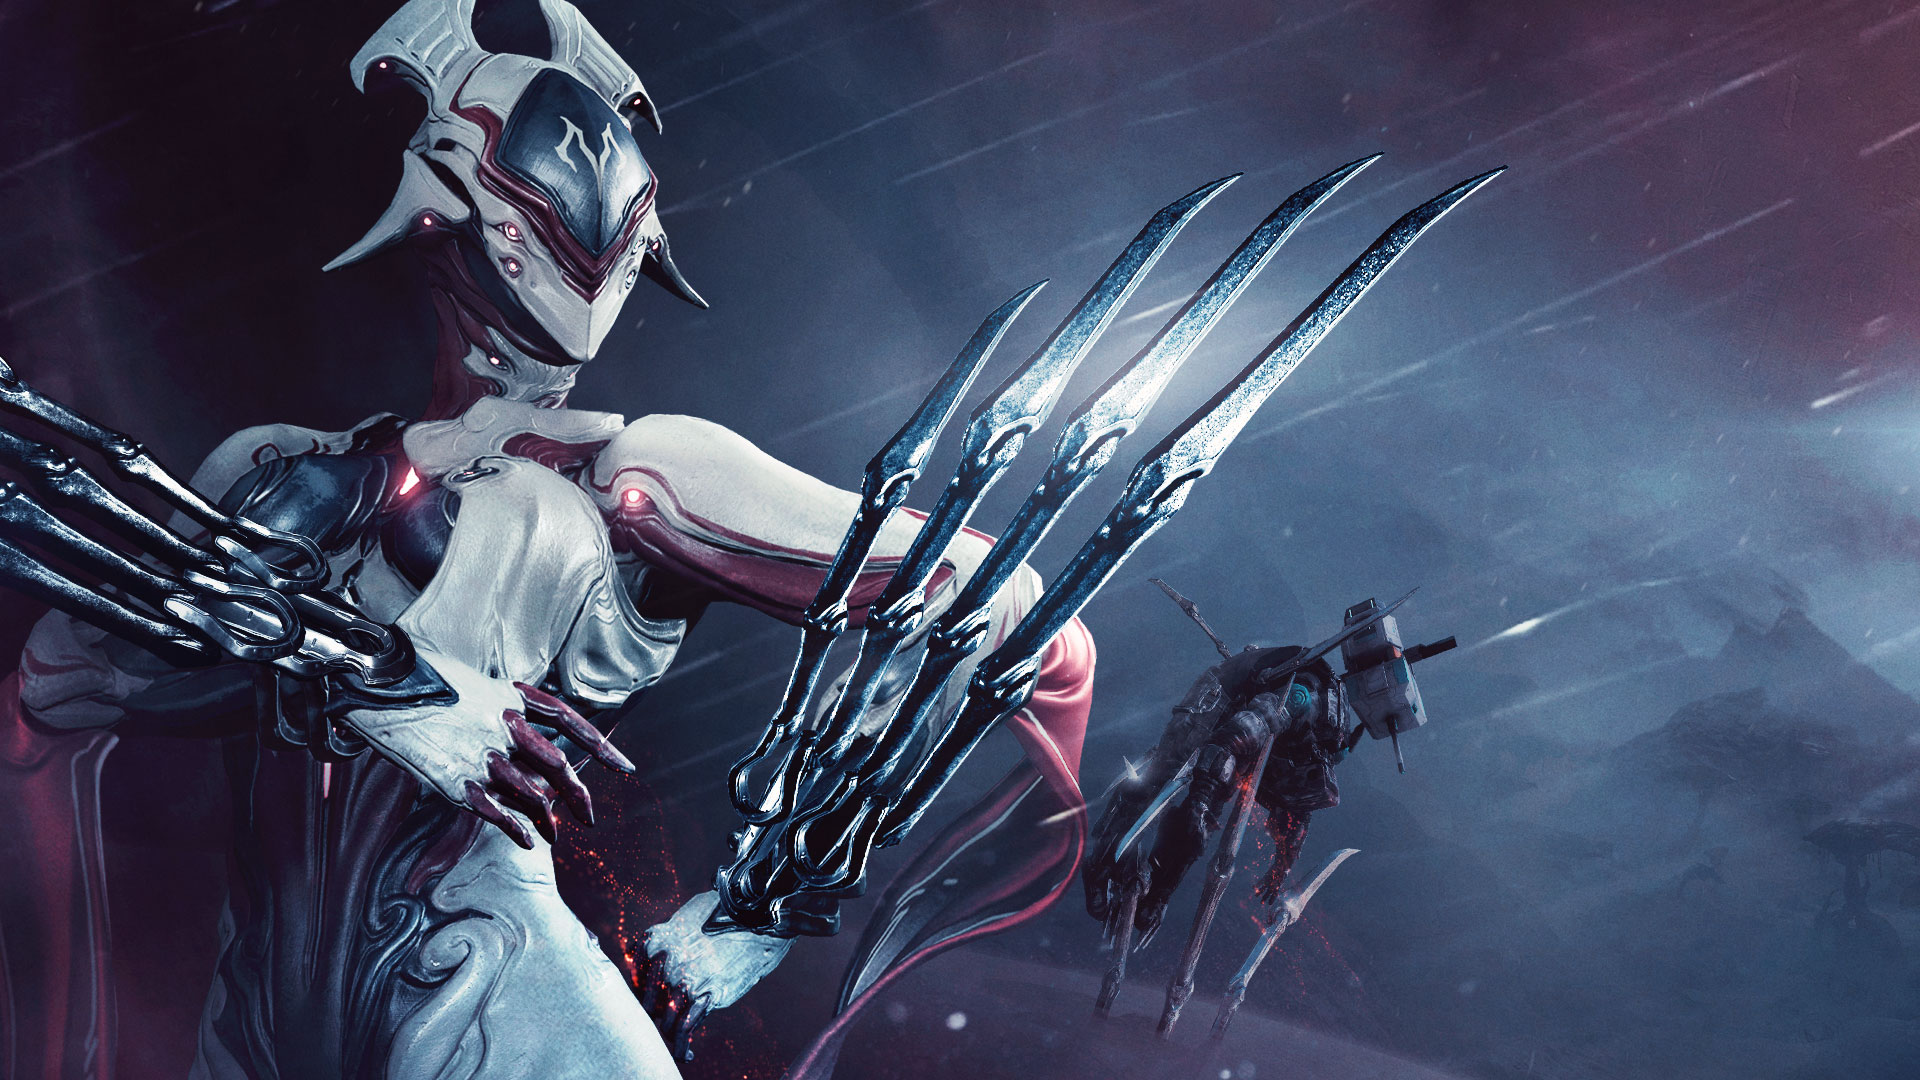 Warframes Fortuna Drops This Week As The Community